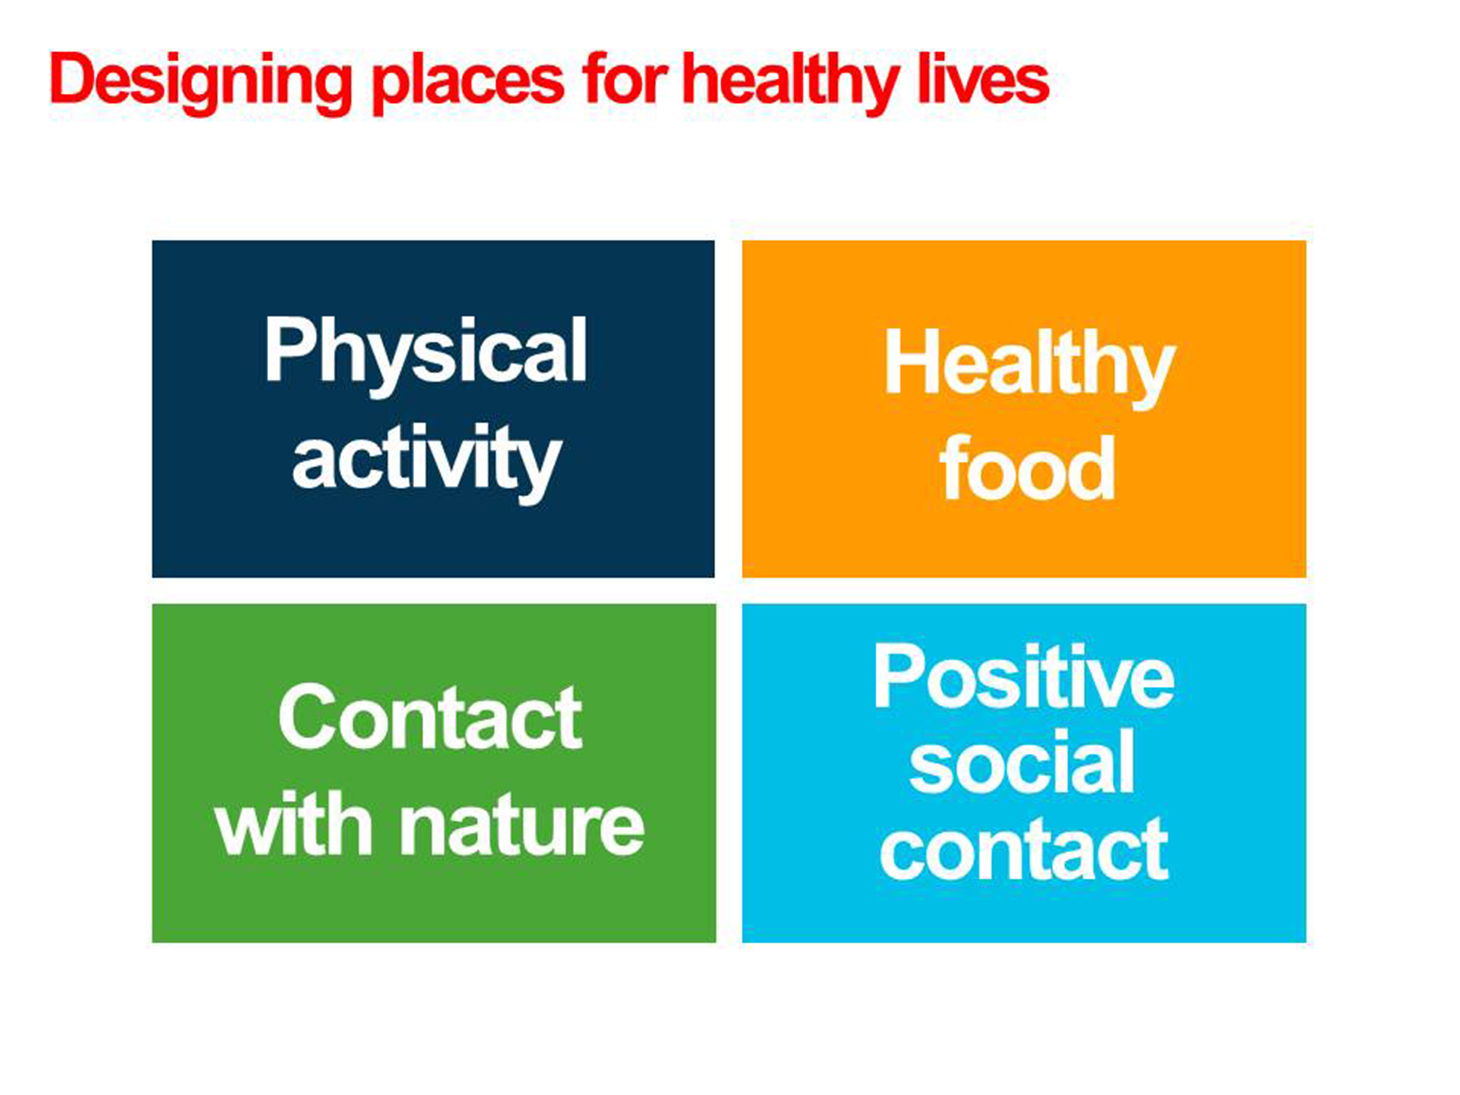 Design Council Cabe's four functions of designing healthier places